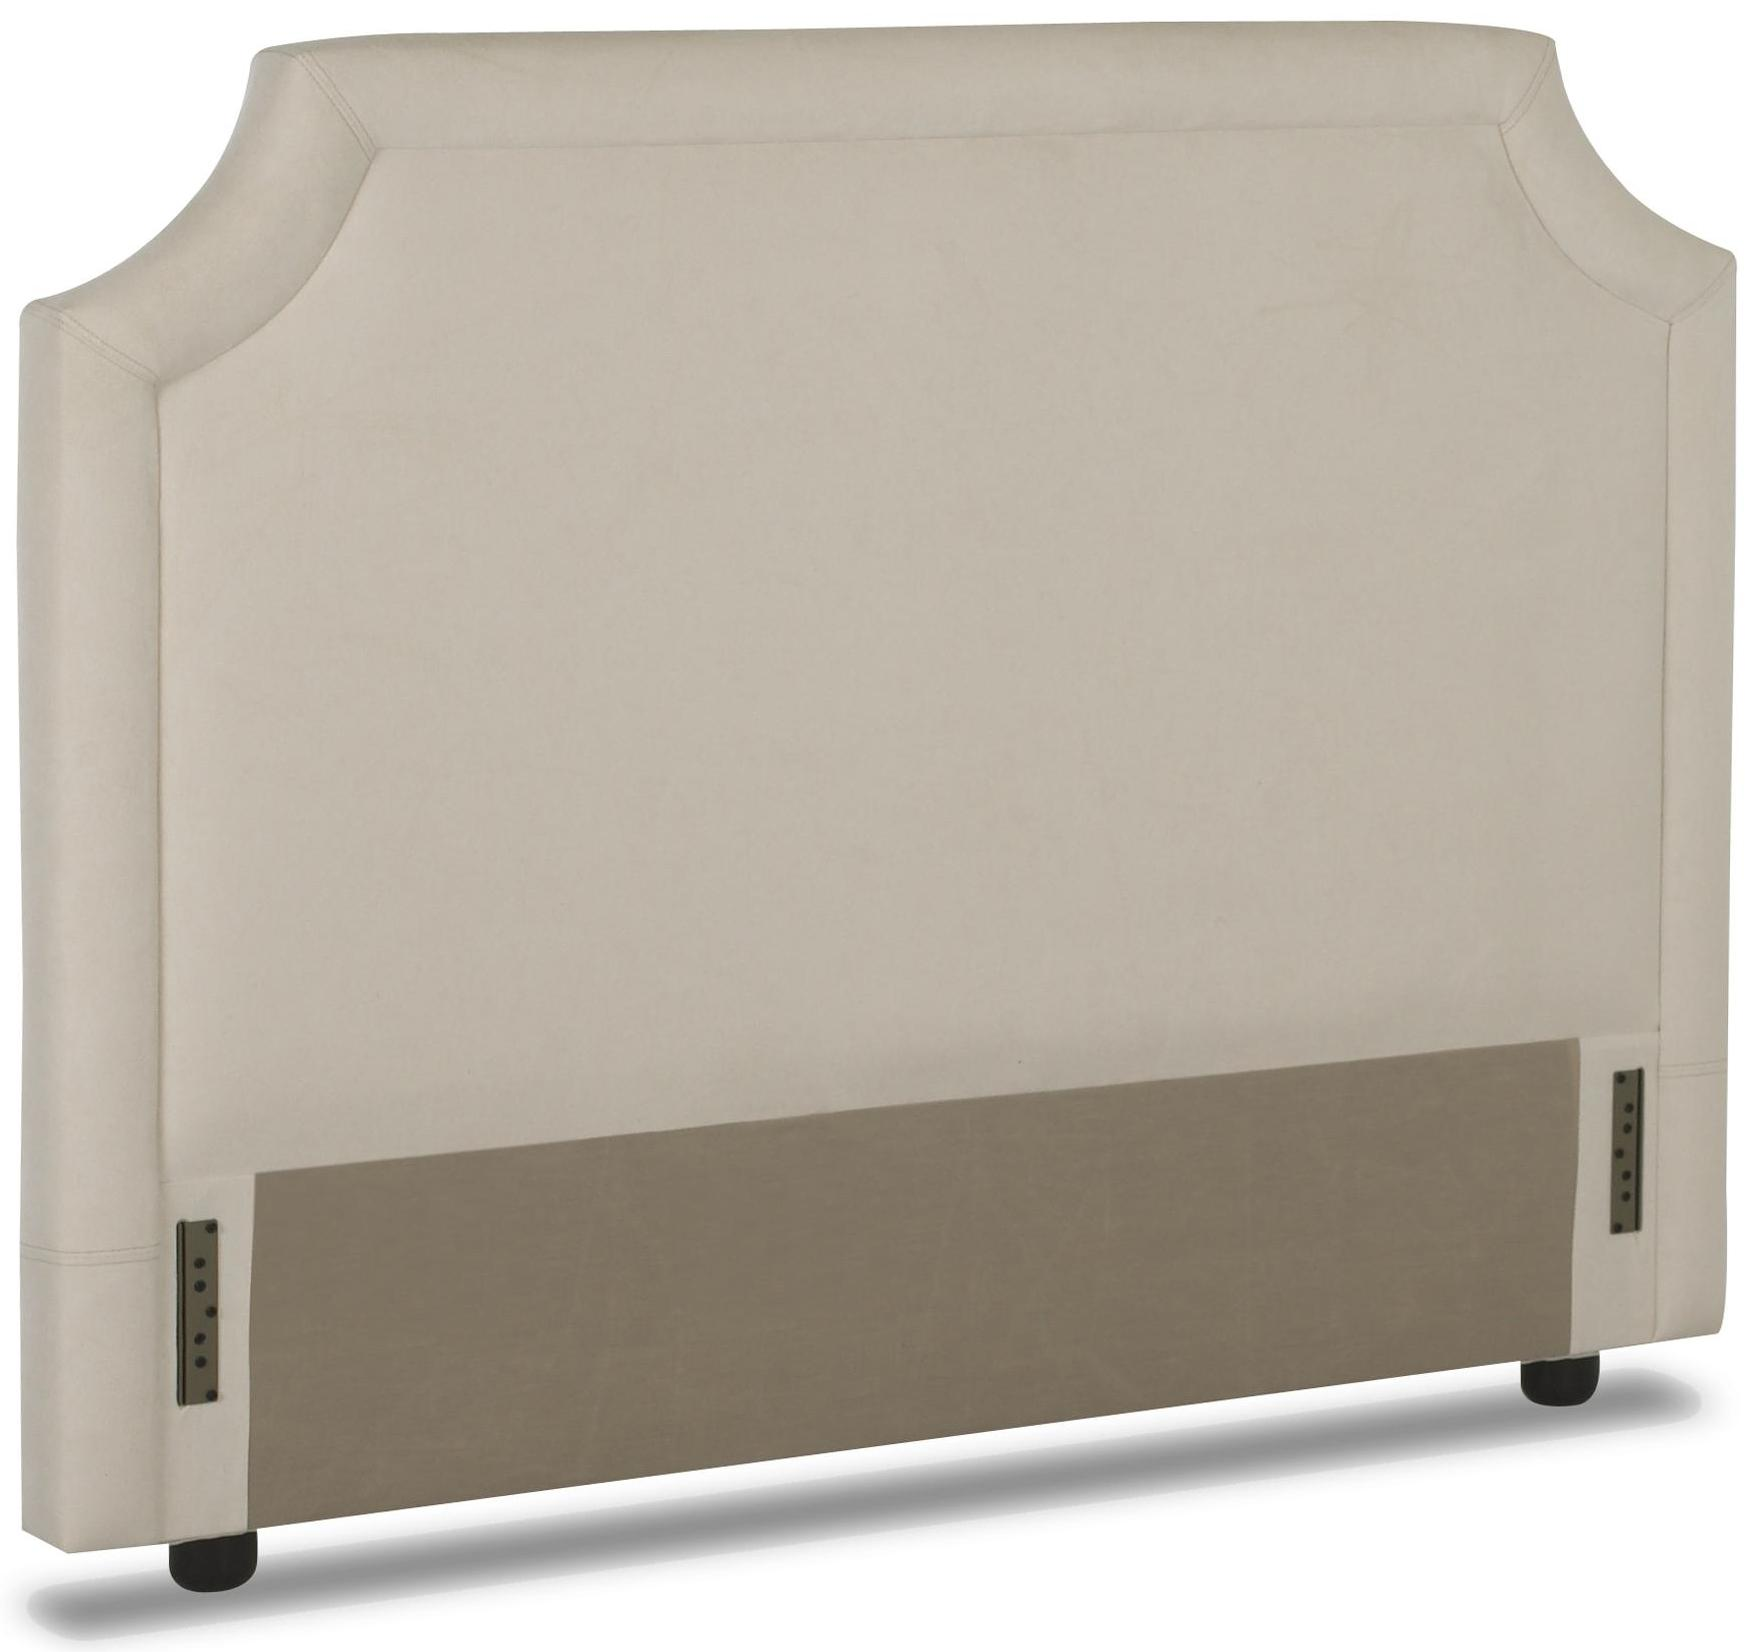 full trim slipcovered wolf furniture tufted products and by upholstered with headboard klaussner